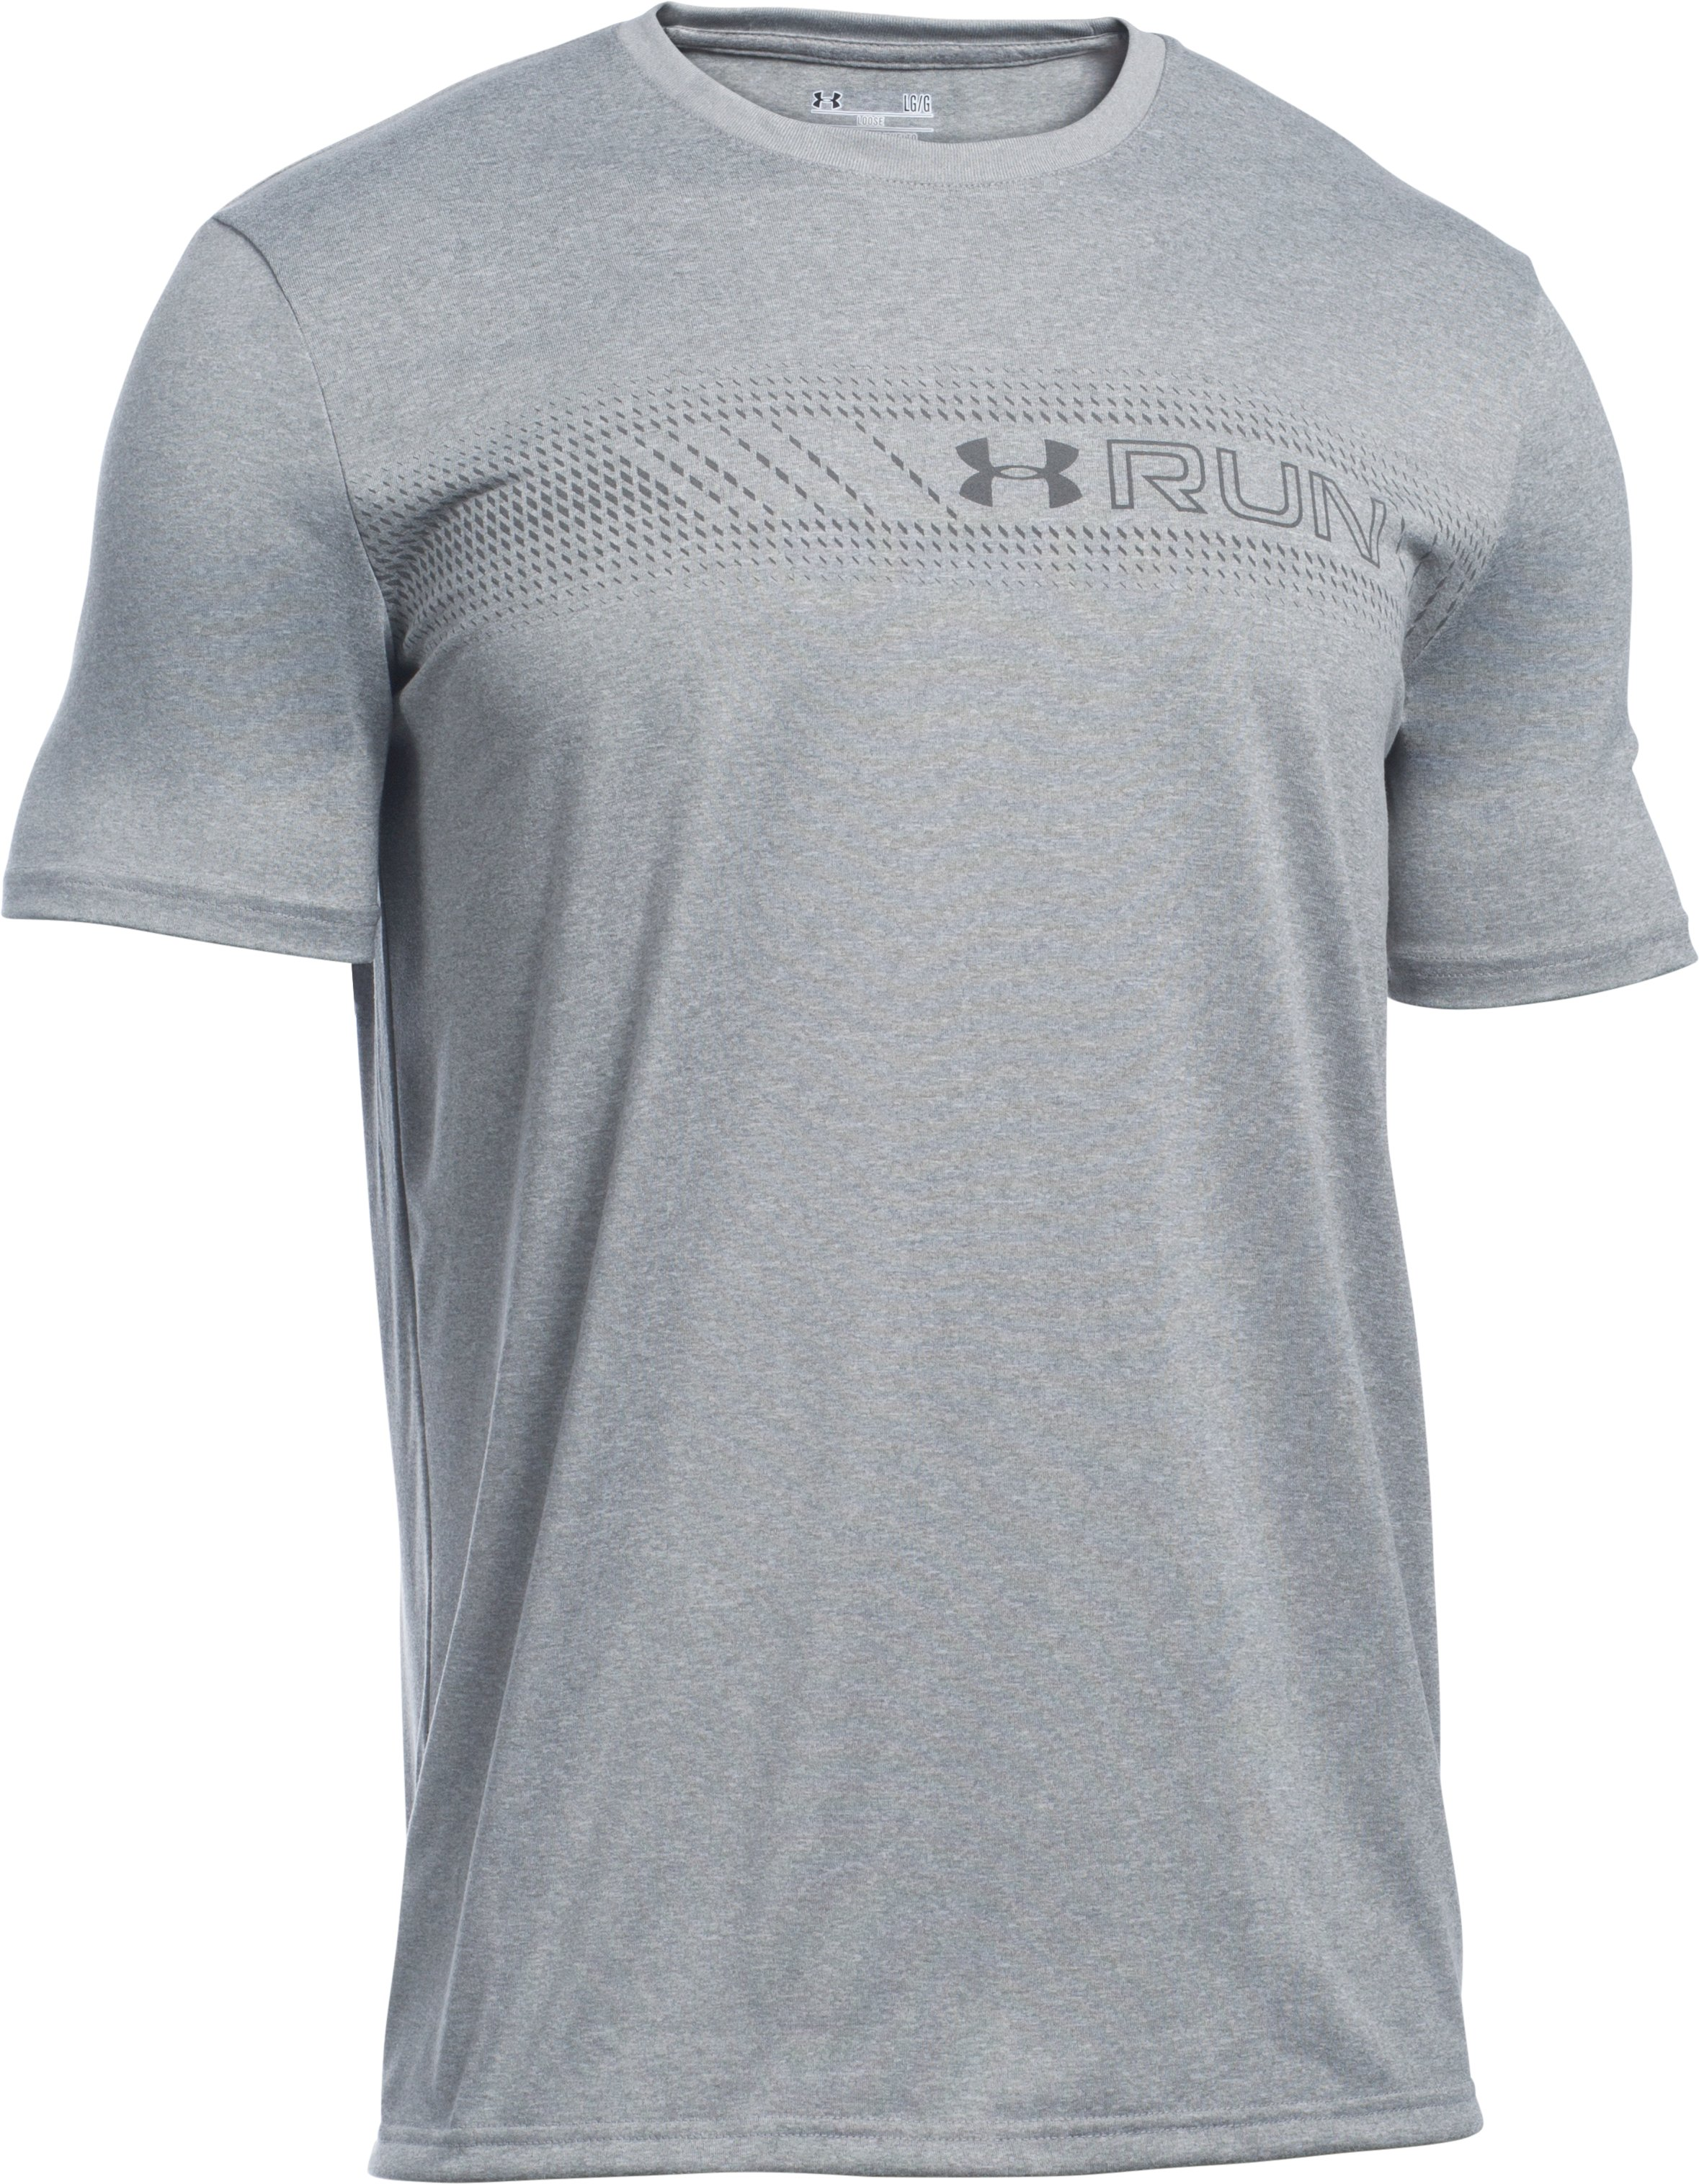 Men's UA Run Chest Graphic T-Shirt, True Gray Heather, undefined